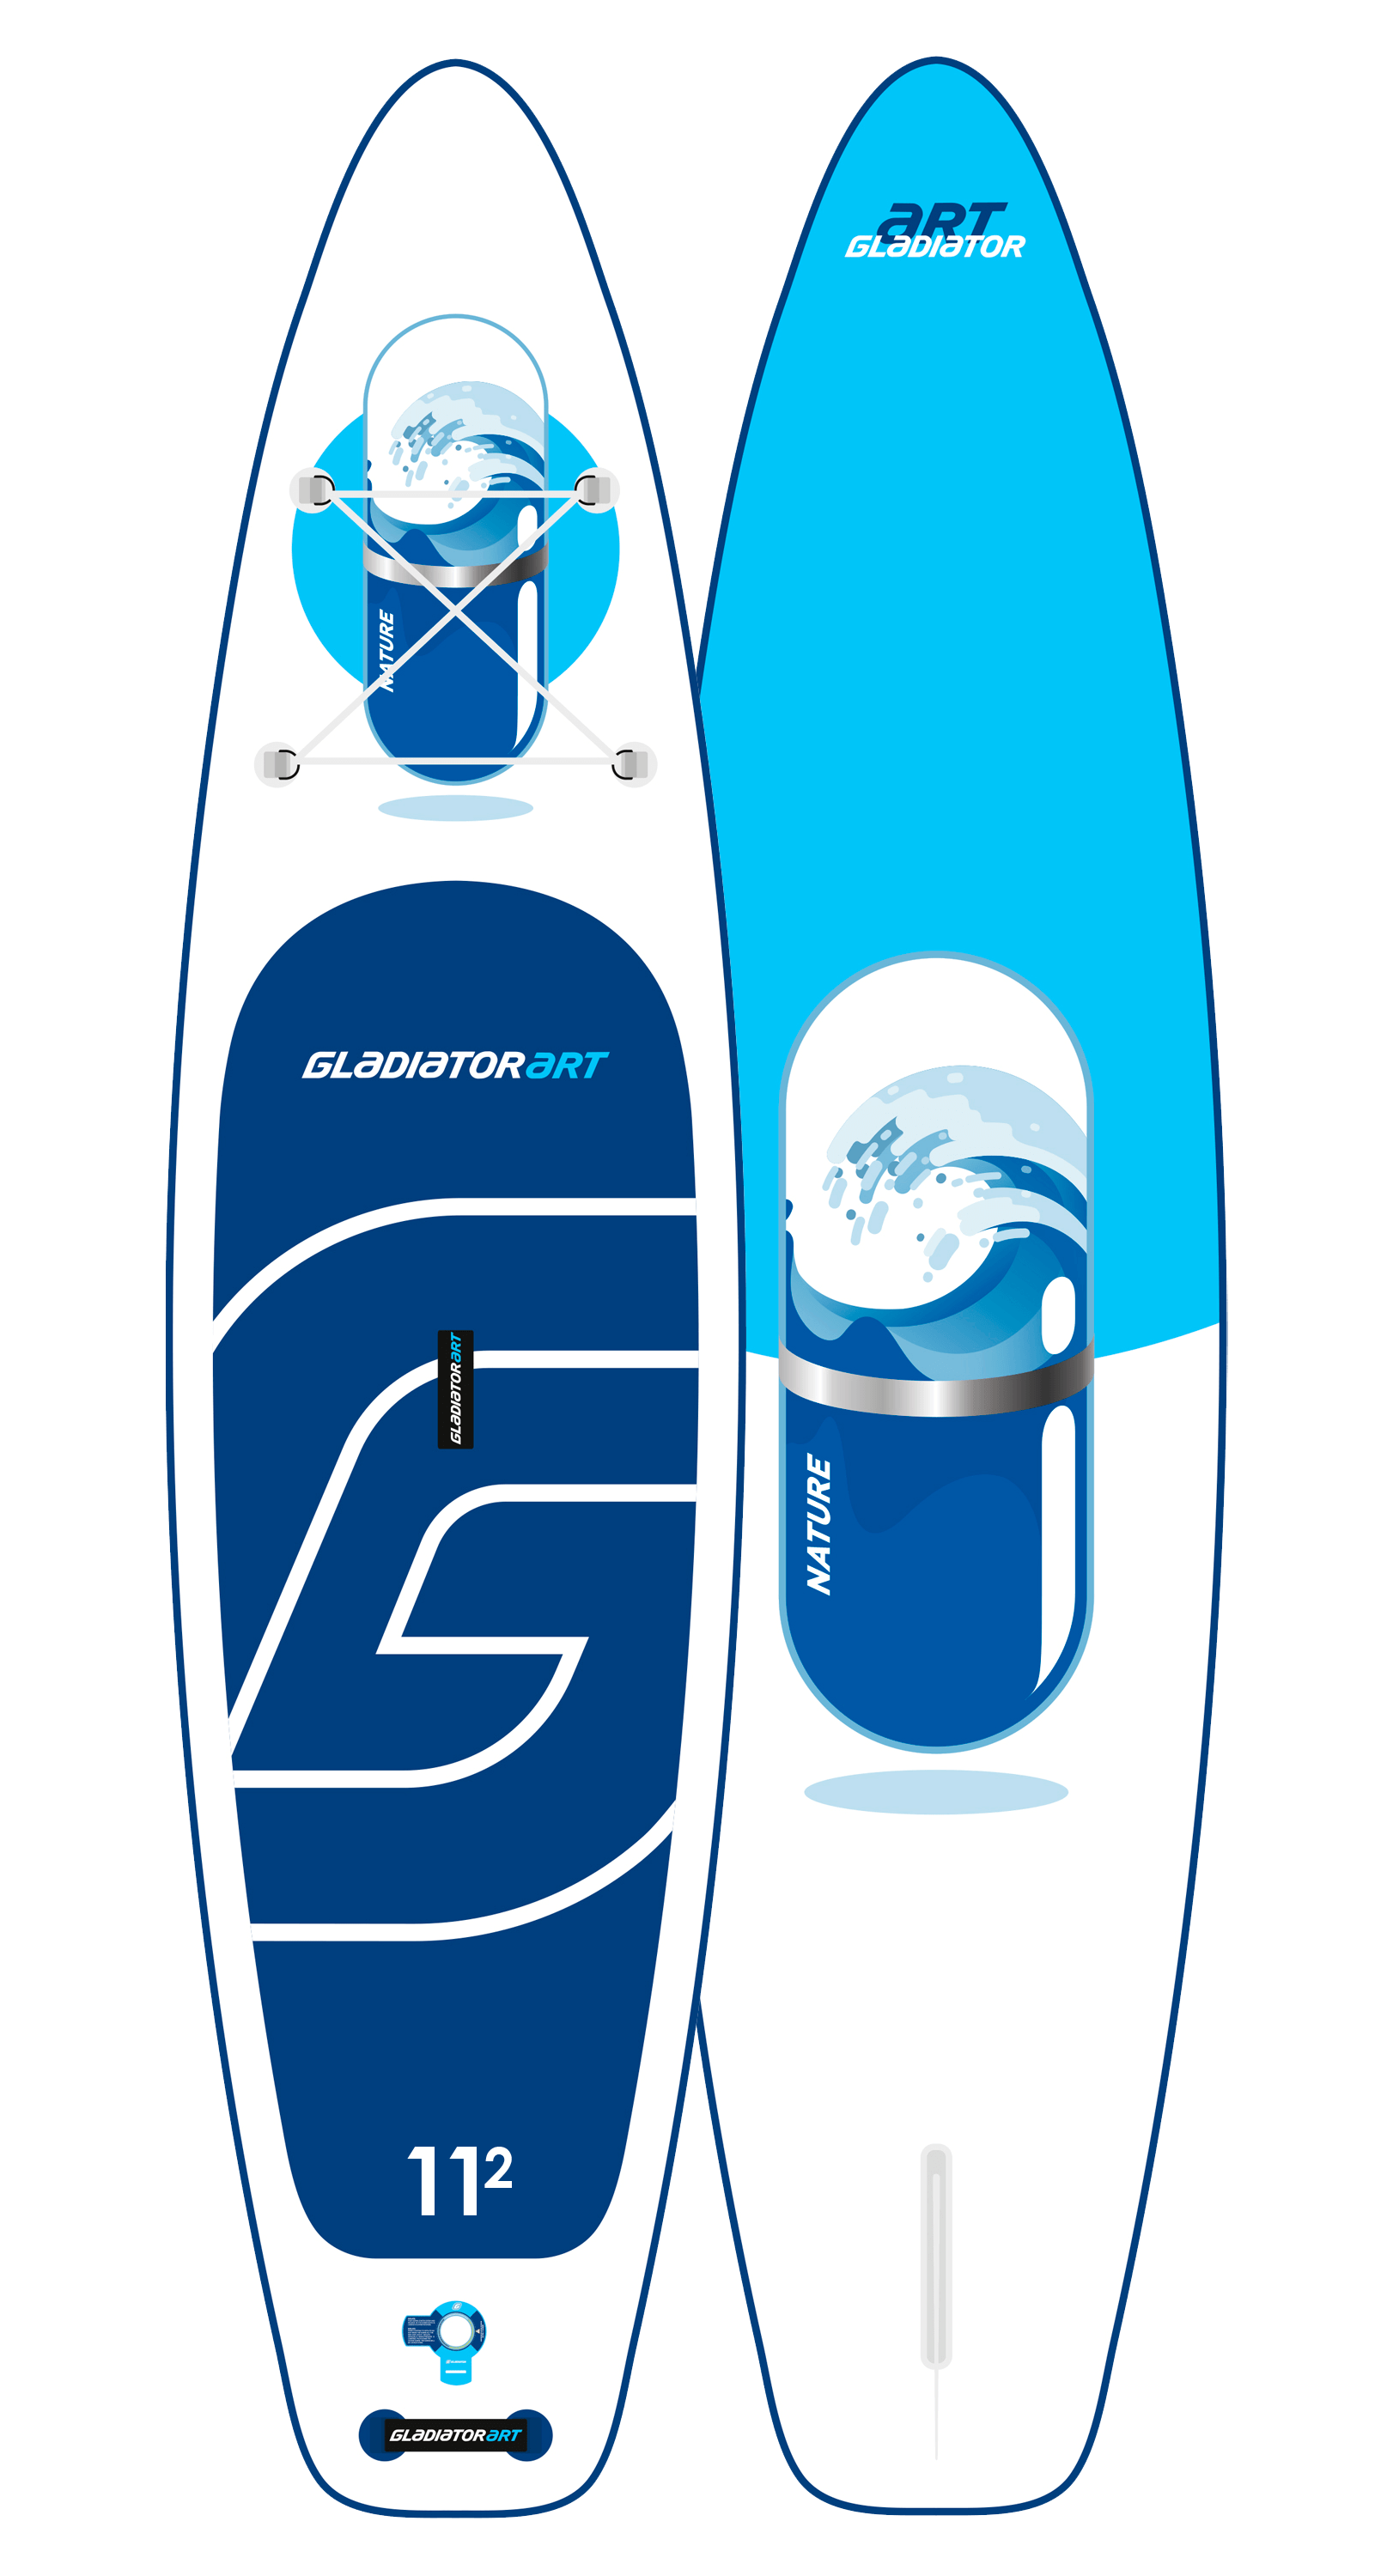 Надувной SUP борд GLADIATOR ART NATURE 11.2